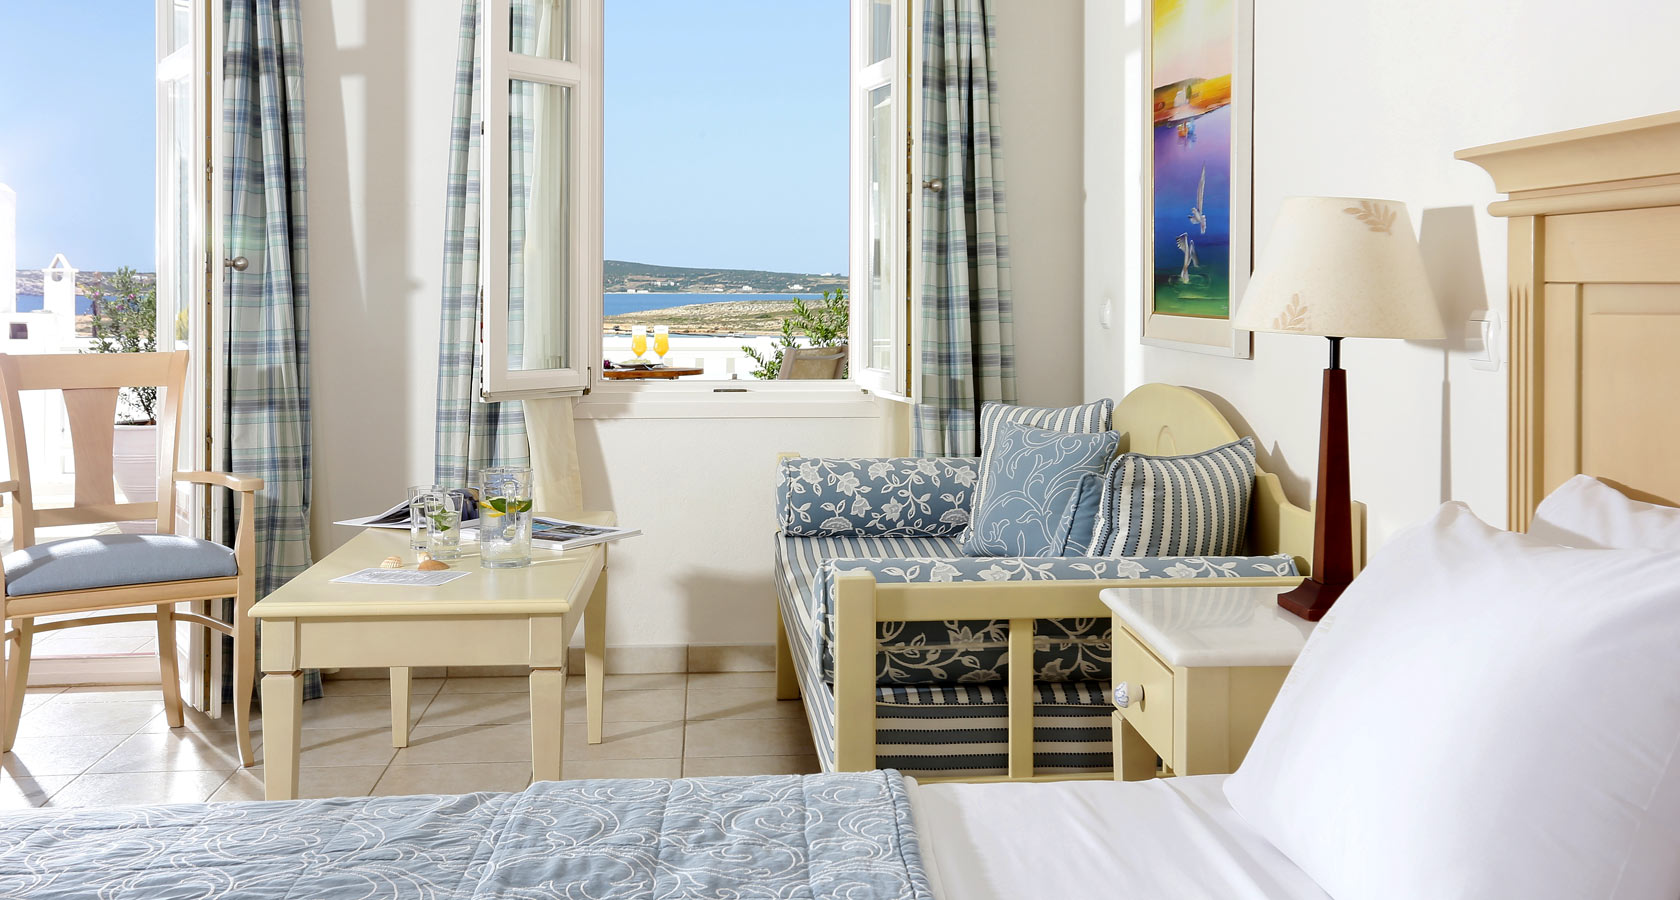 Paros Accommodation in Superior Suites - Stelia Mare Hotel Naoussa Paros Greece